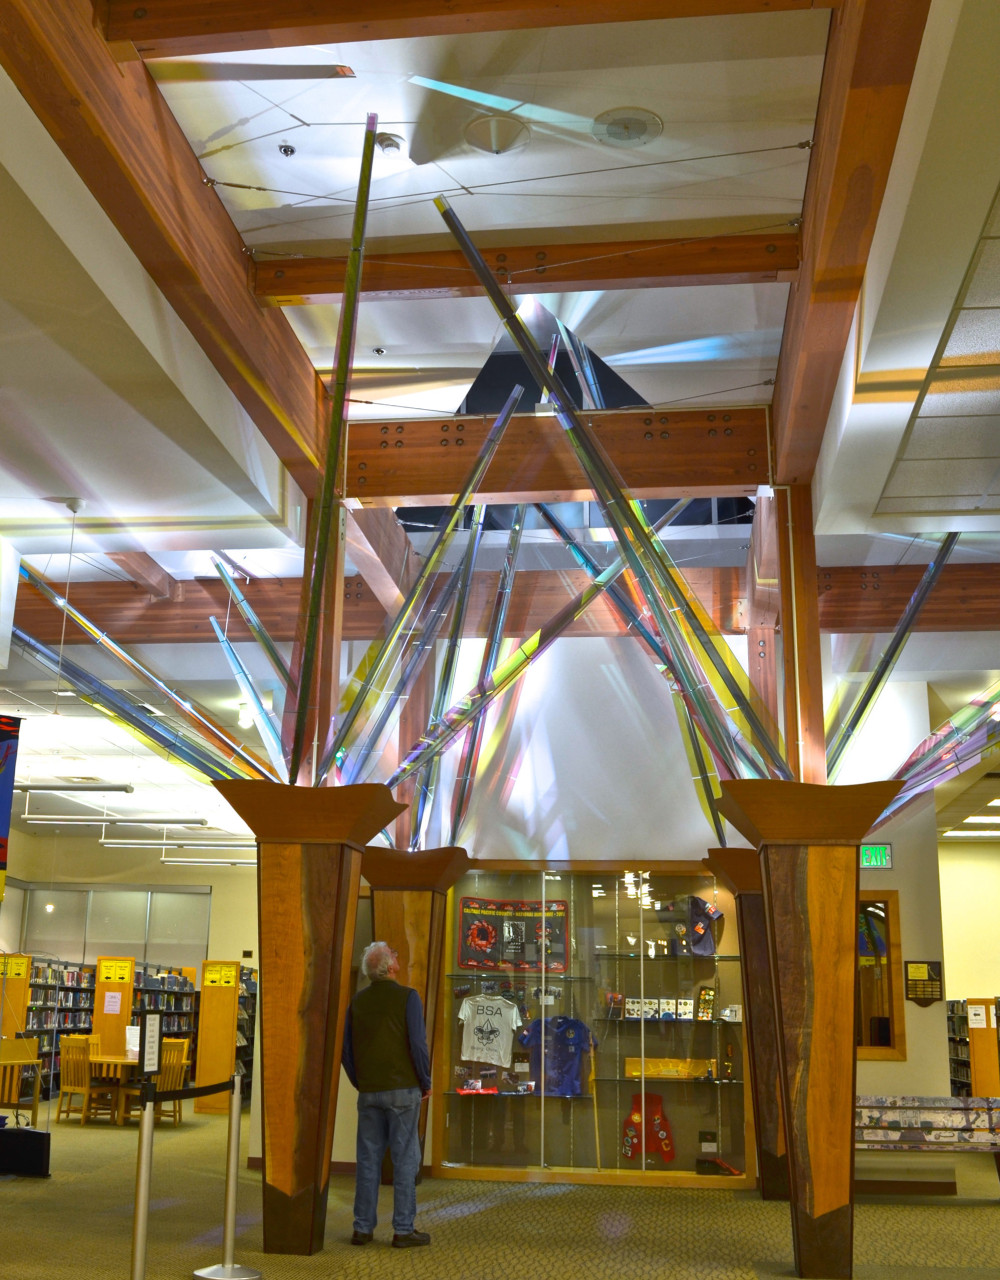 Mollie's Garden, Ed Carpenter's interior library sculpture is a wood, steel, and glass installation in the entry of the Forest Grove, Oregon, library. / image 1